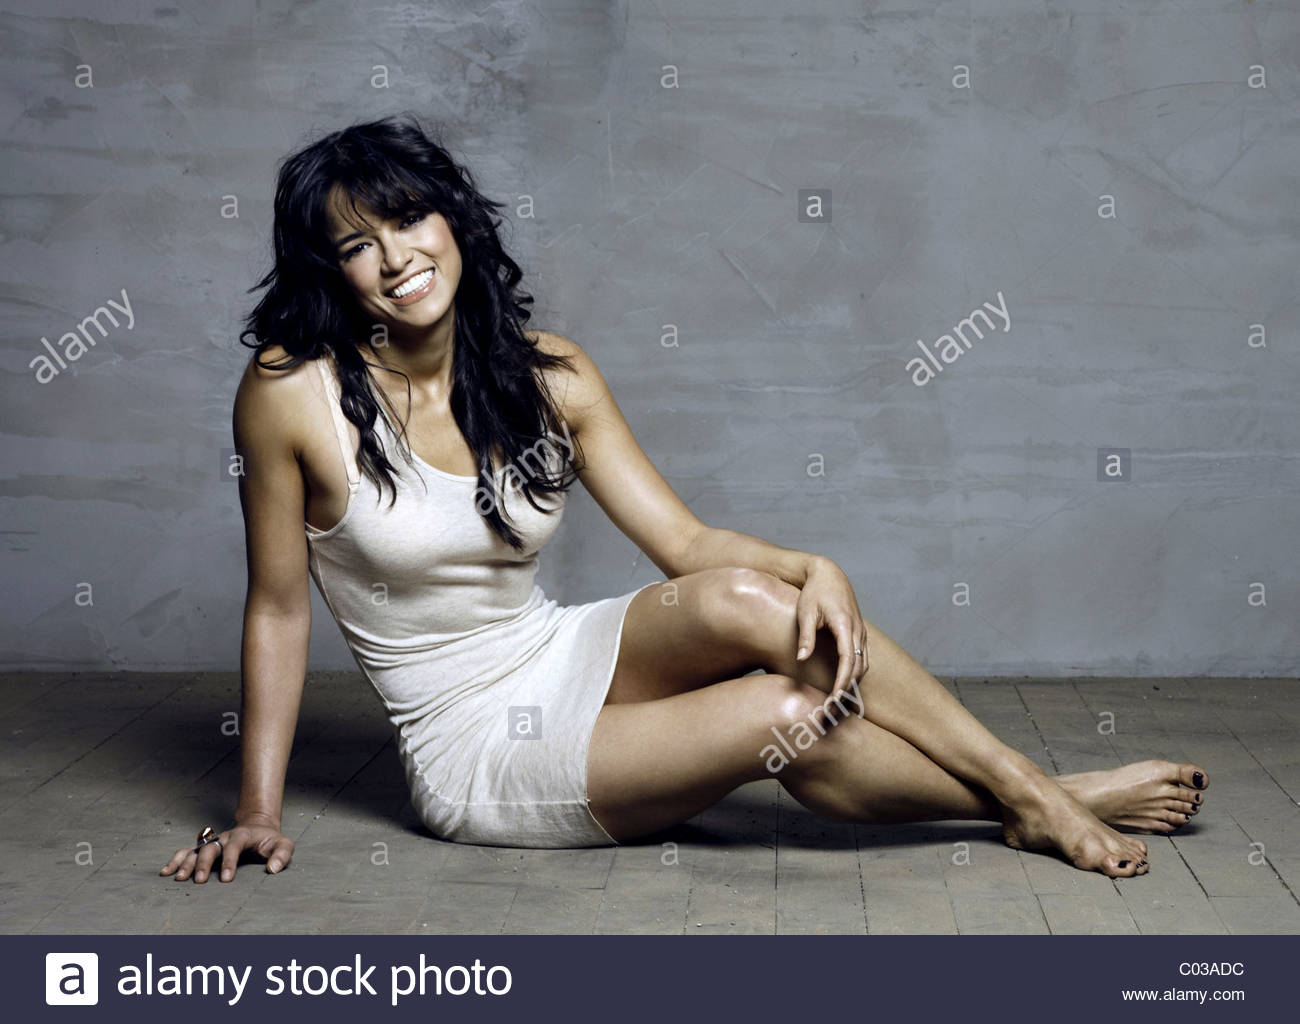 MICHELLE RODRIGUEZ FAST & FURIOUS; THE FAST AND THE FURIOUS 4 (2009) - Stock Image